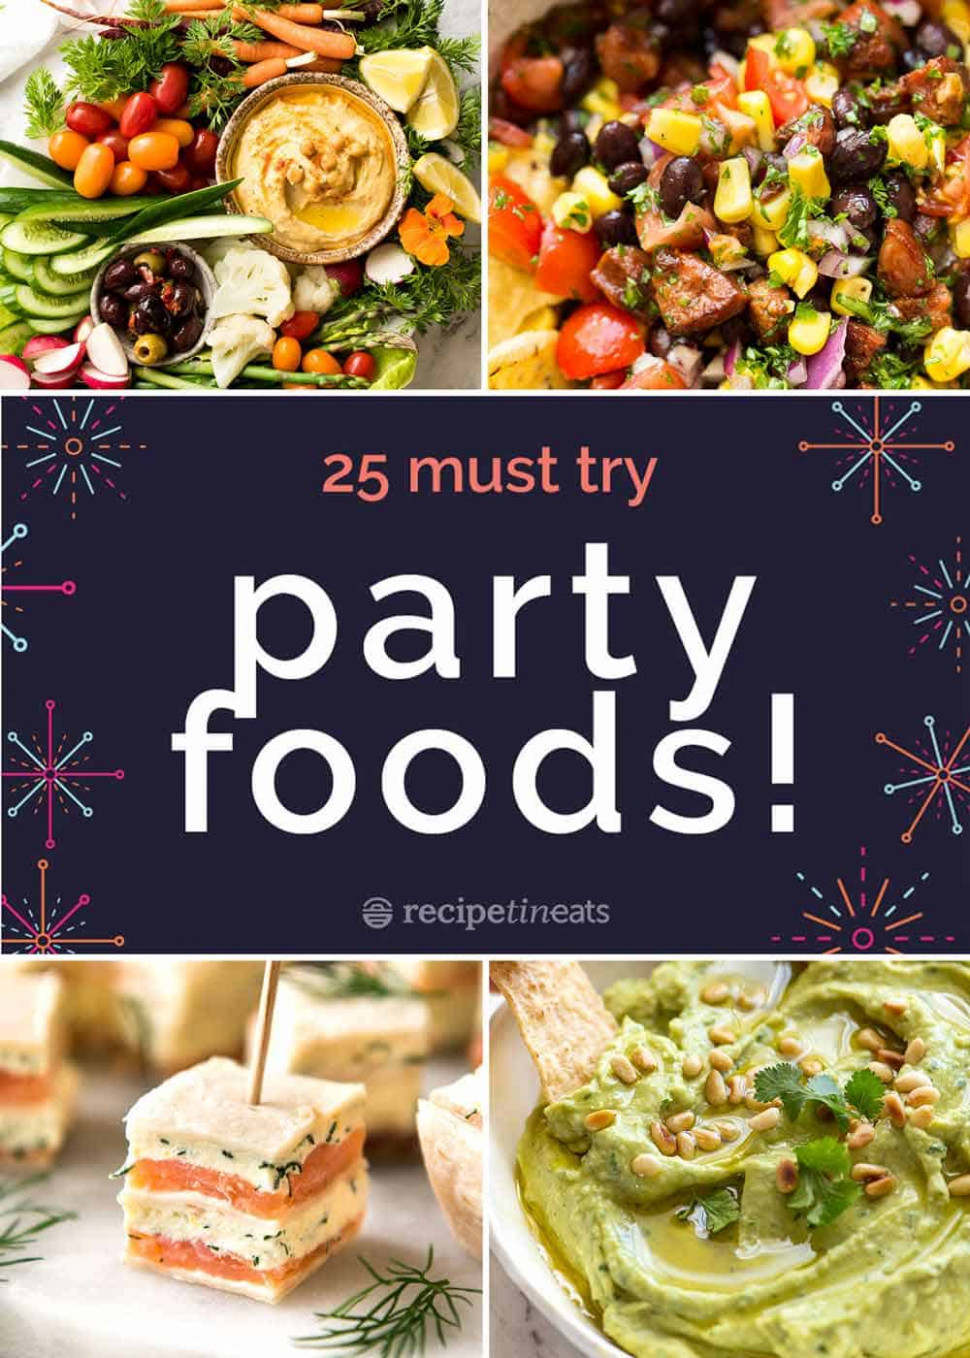 12 BEST Party Food Recipes! - recipes best dinner